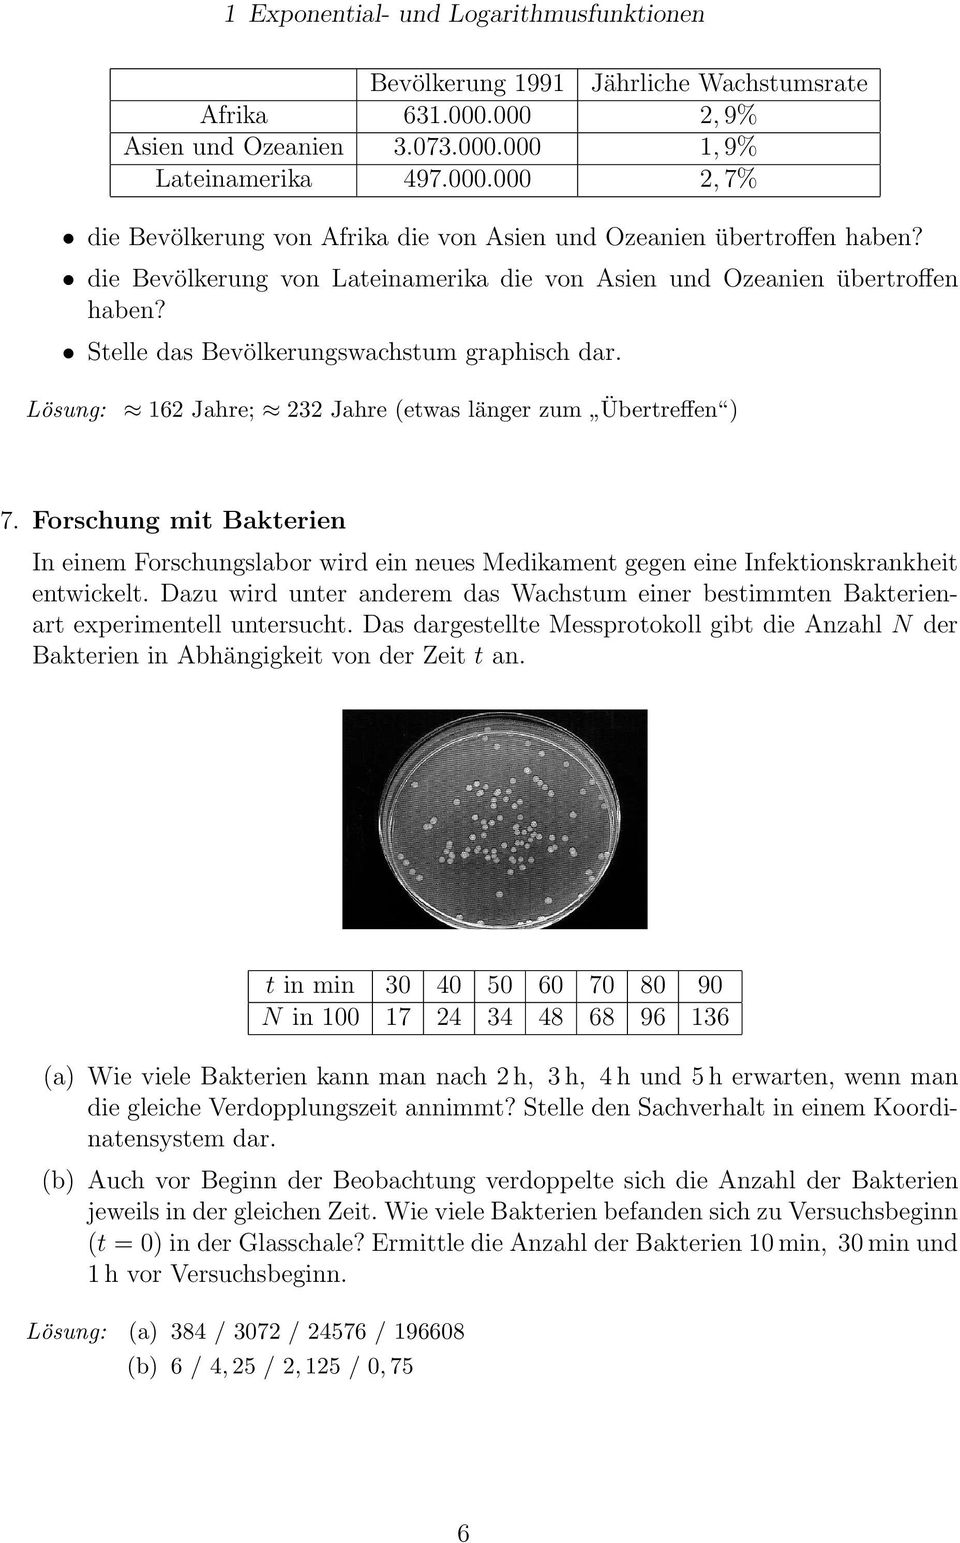 Awesome Multiplikation Wort Probleme Arbeitsblatt Ornament ...